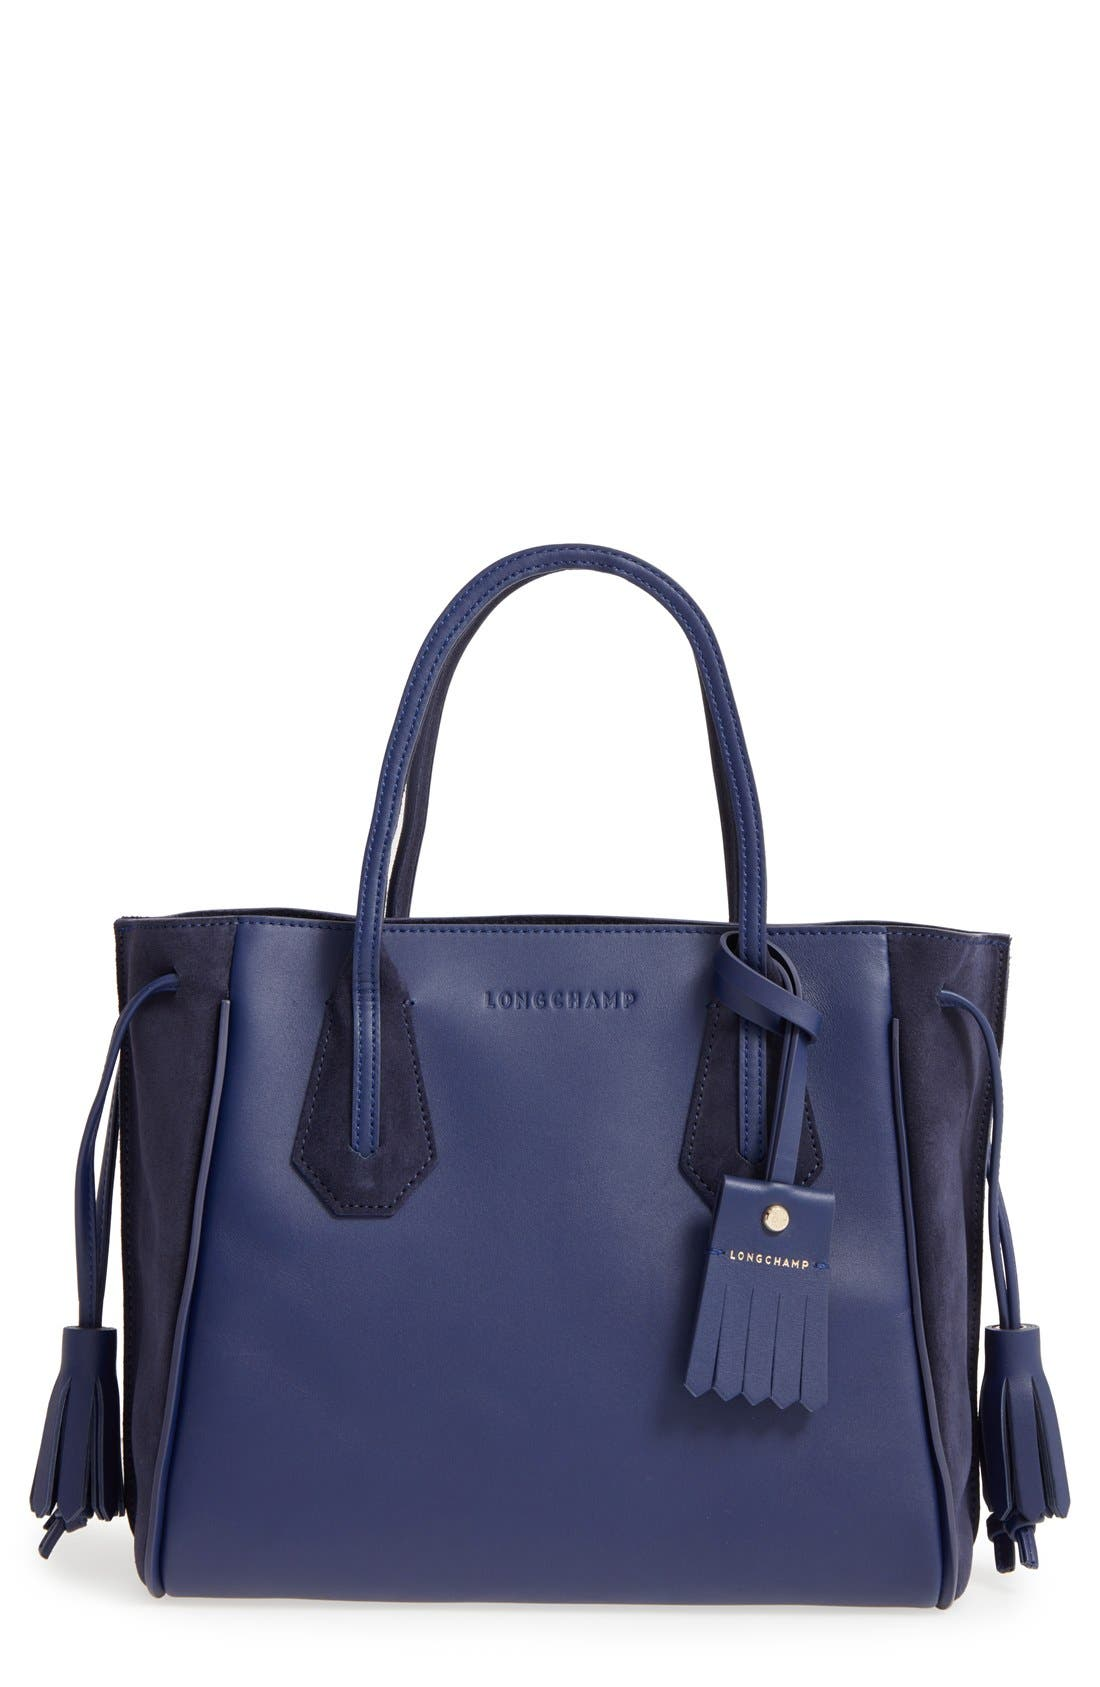 Longchamp 'Small Penelope Fantasie' Leather Tote